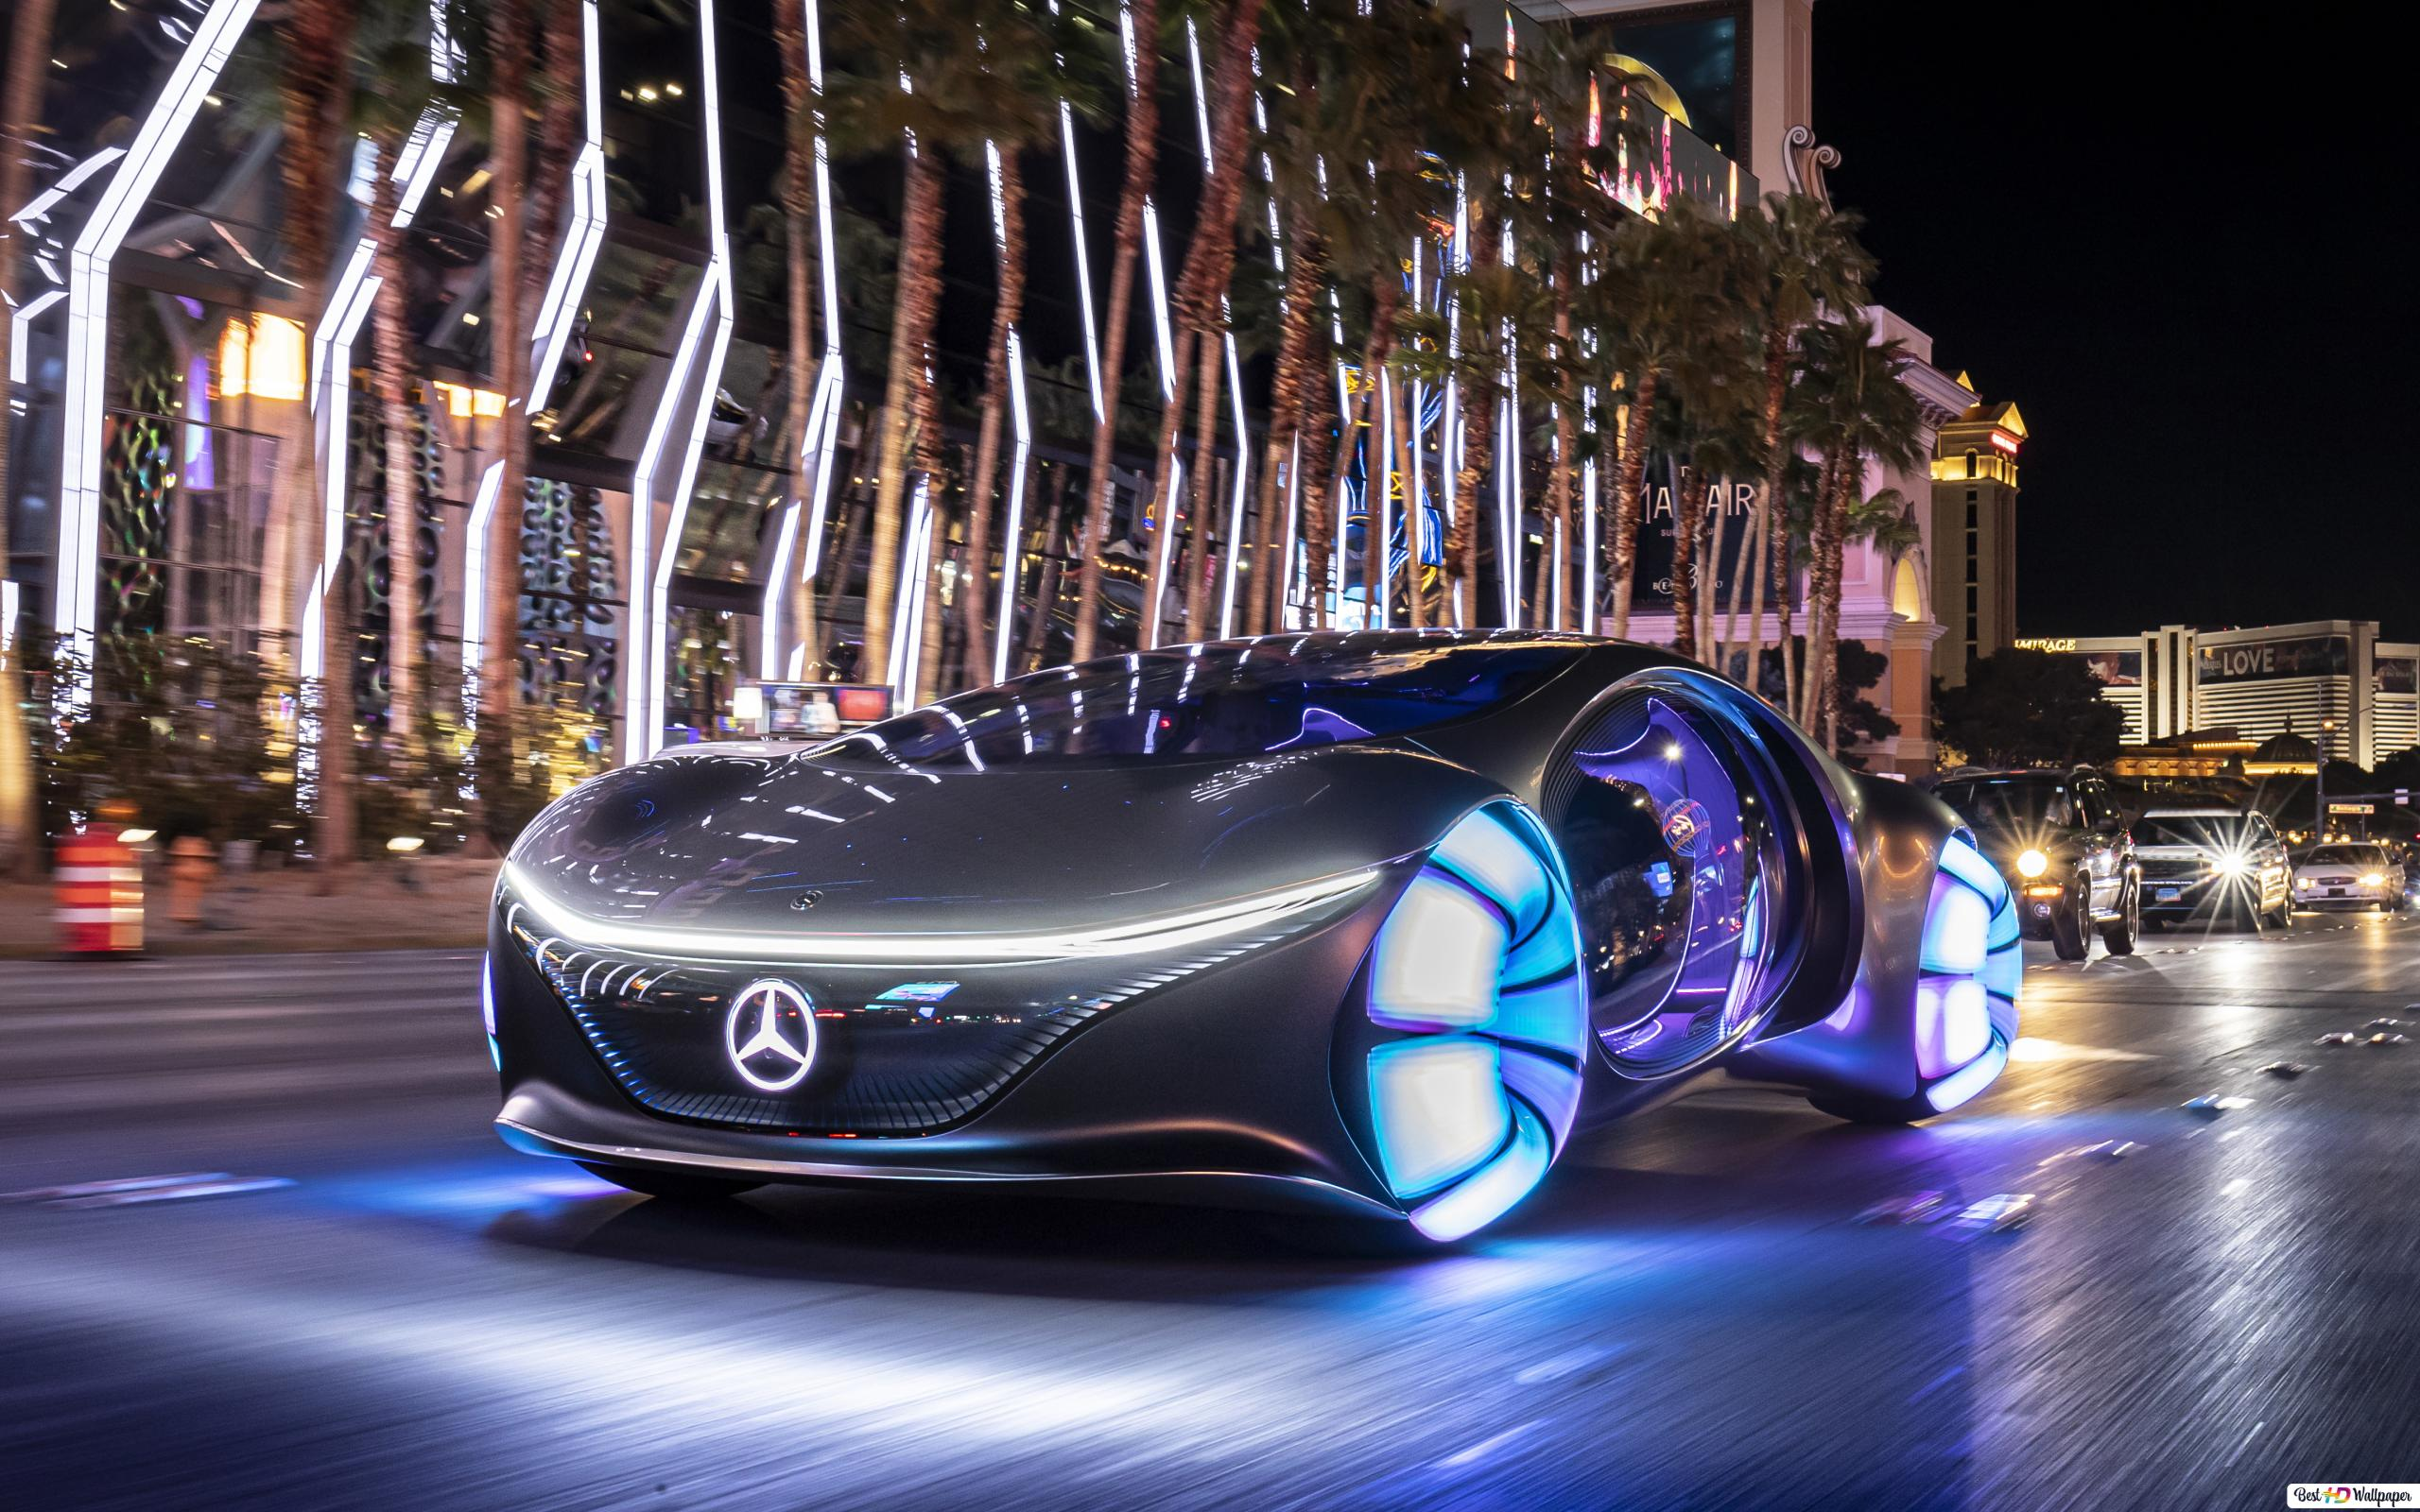 Mercedes Benz Vision Avtr Avatar Inspired Concept Car Hd Wallpaper Download